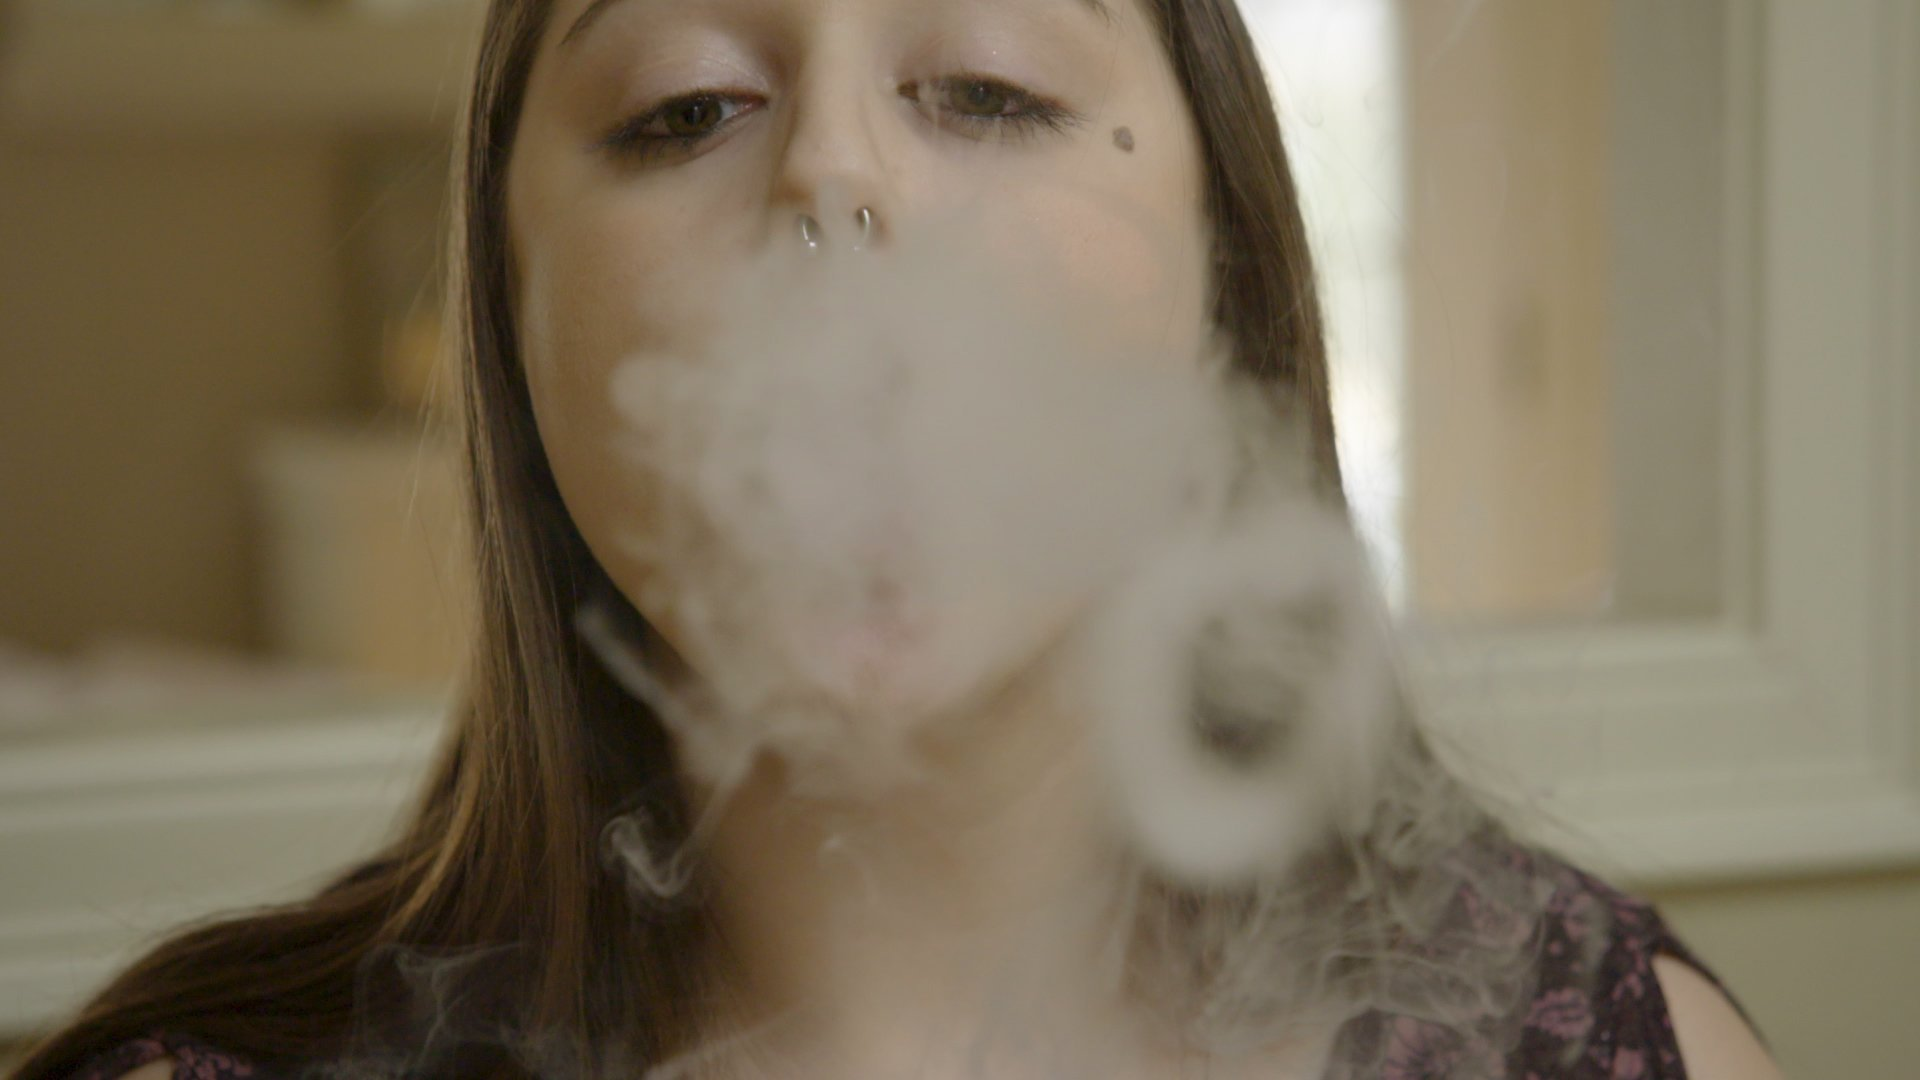 High schools embrace 'vape detectors' in fight against bathroom vaping